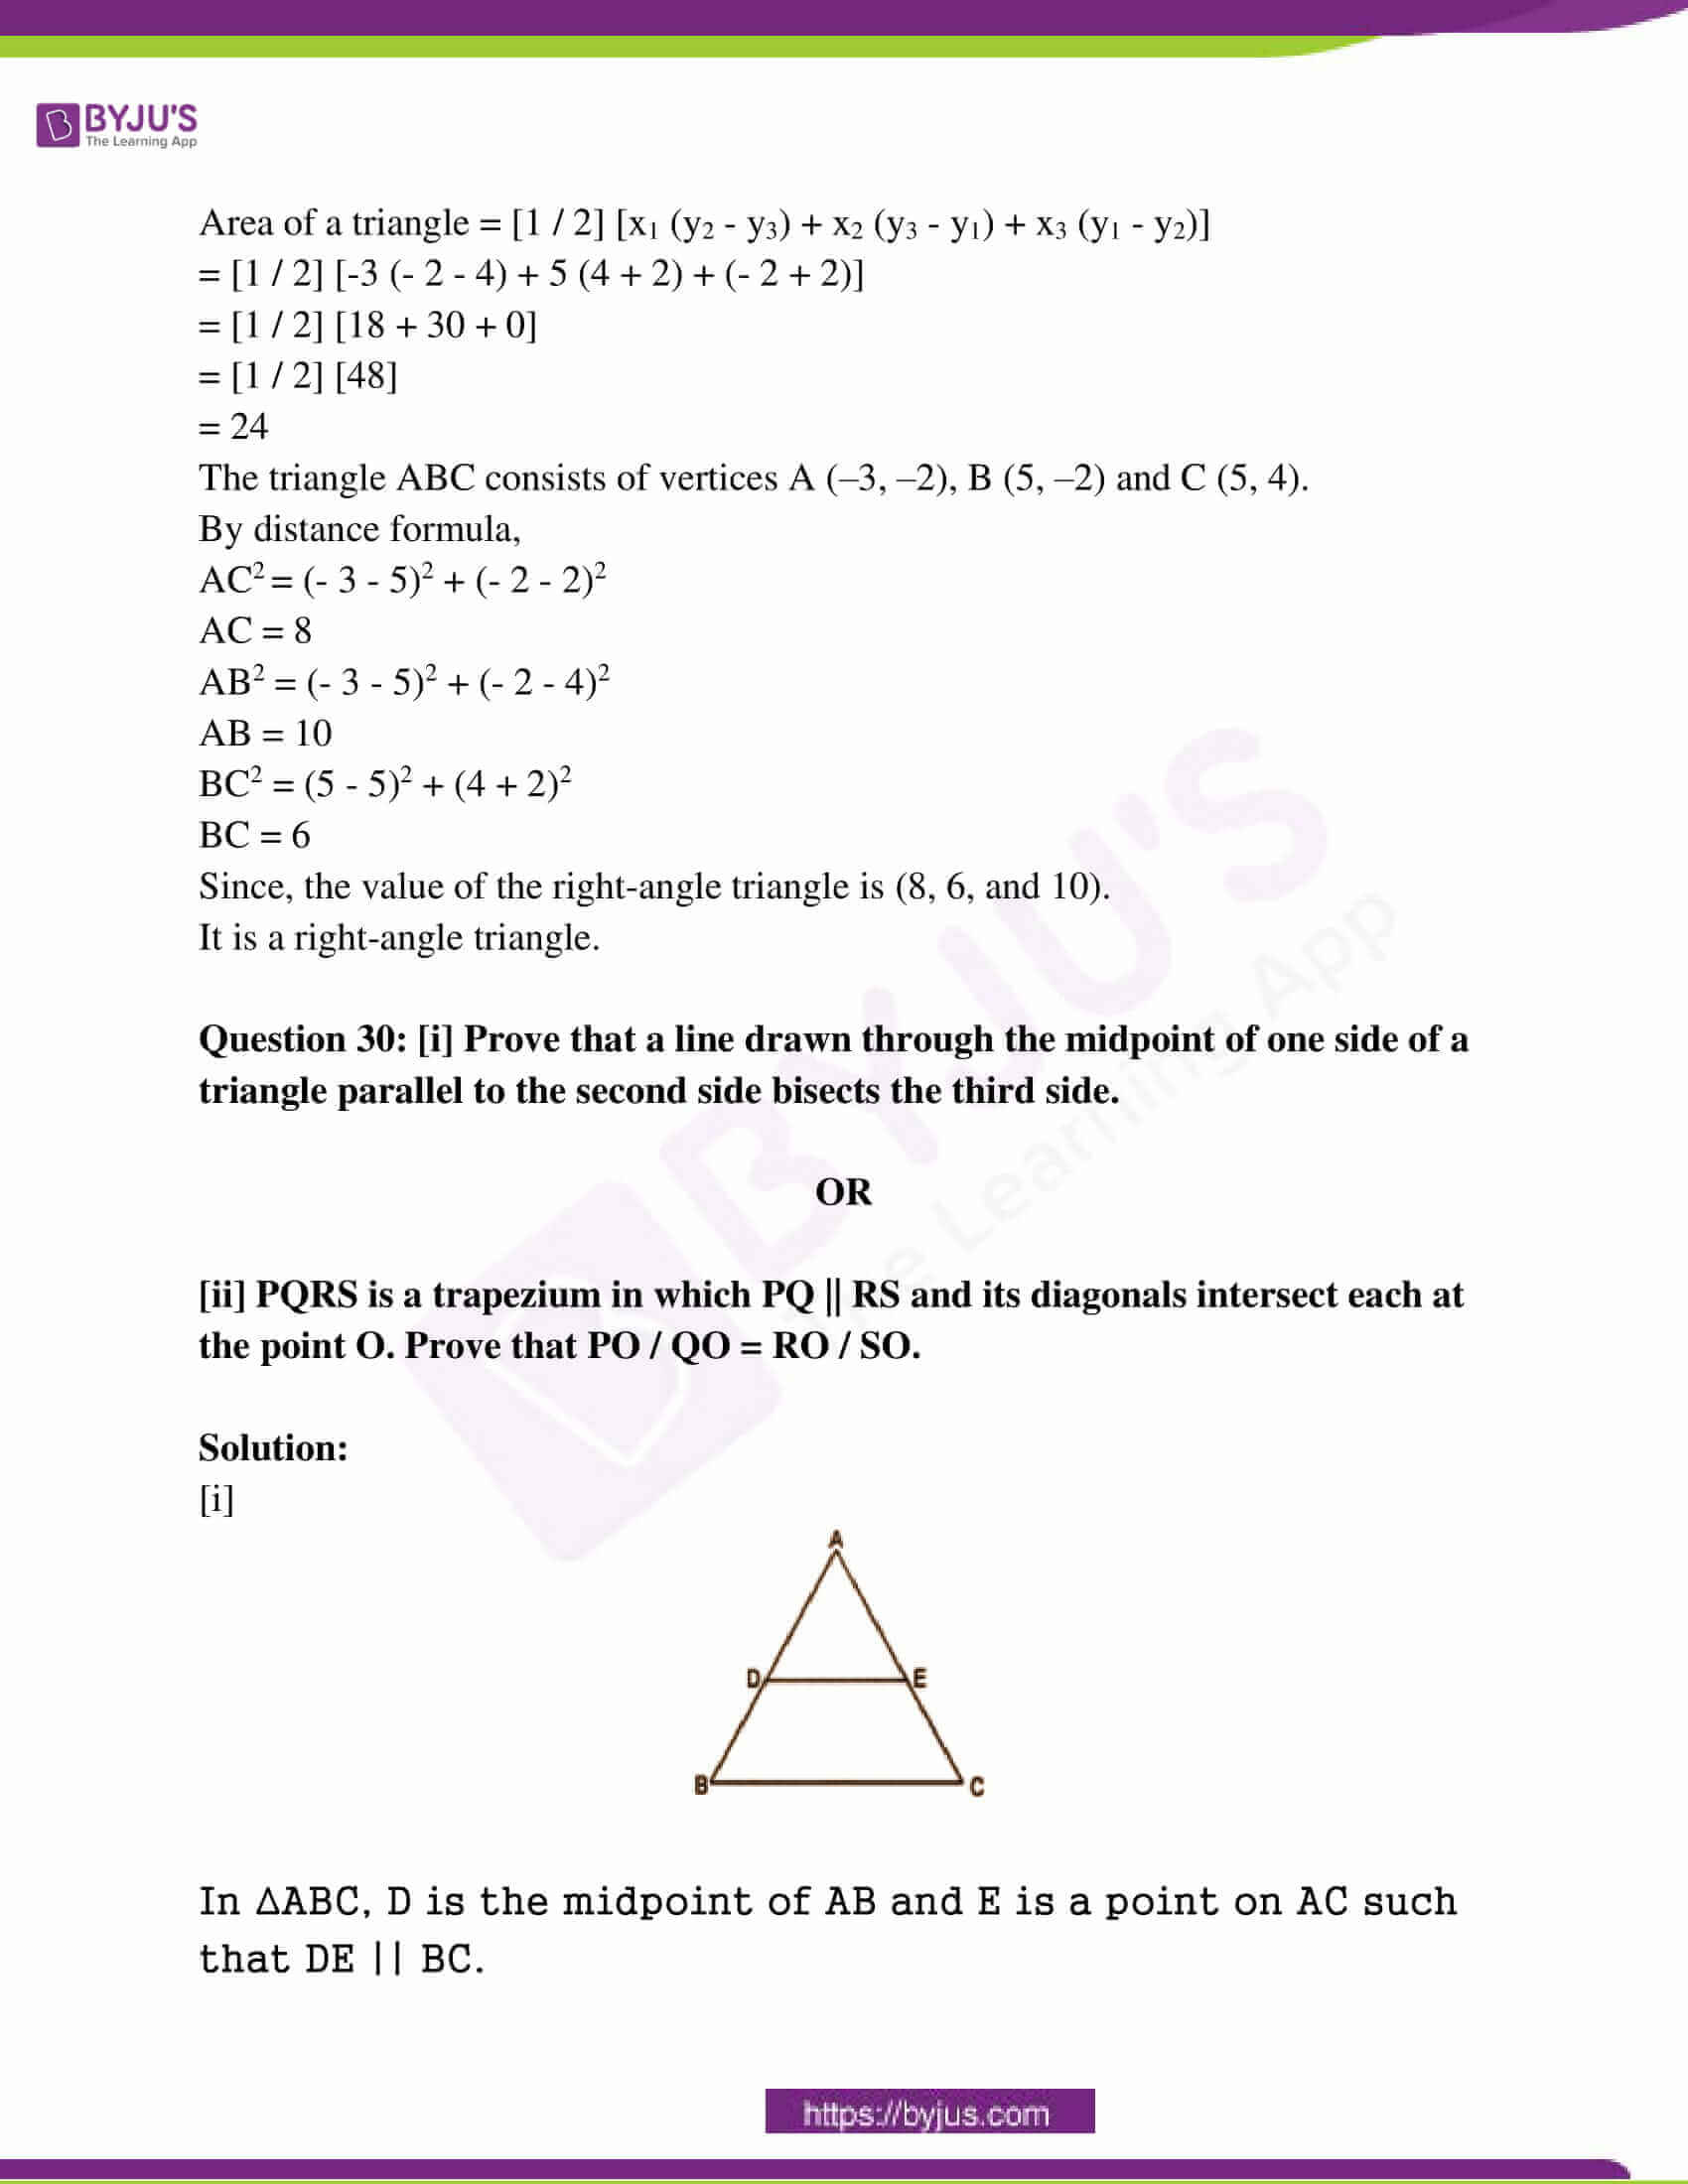 rajasthan board class 10 examination question paper sol march 2017 18